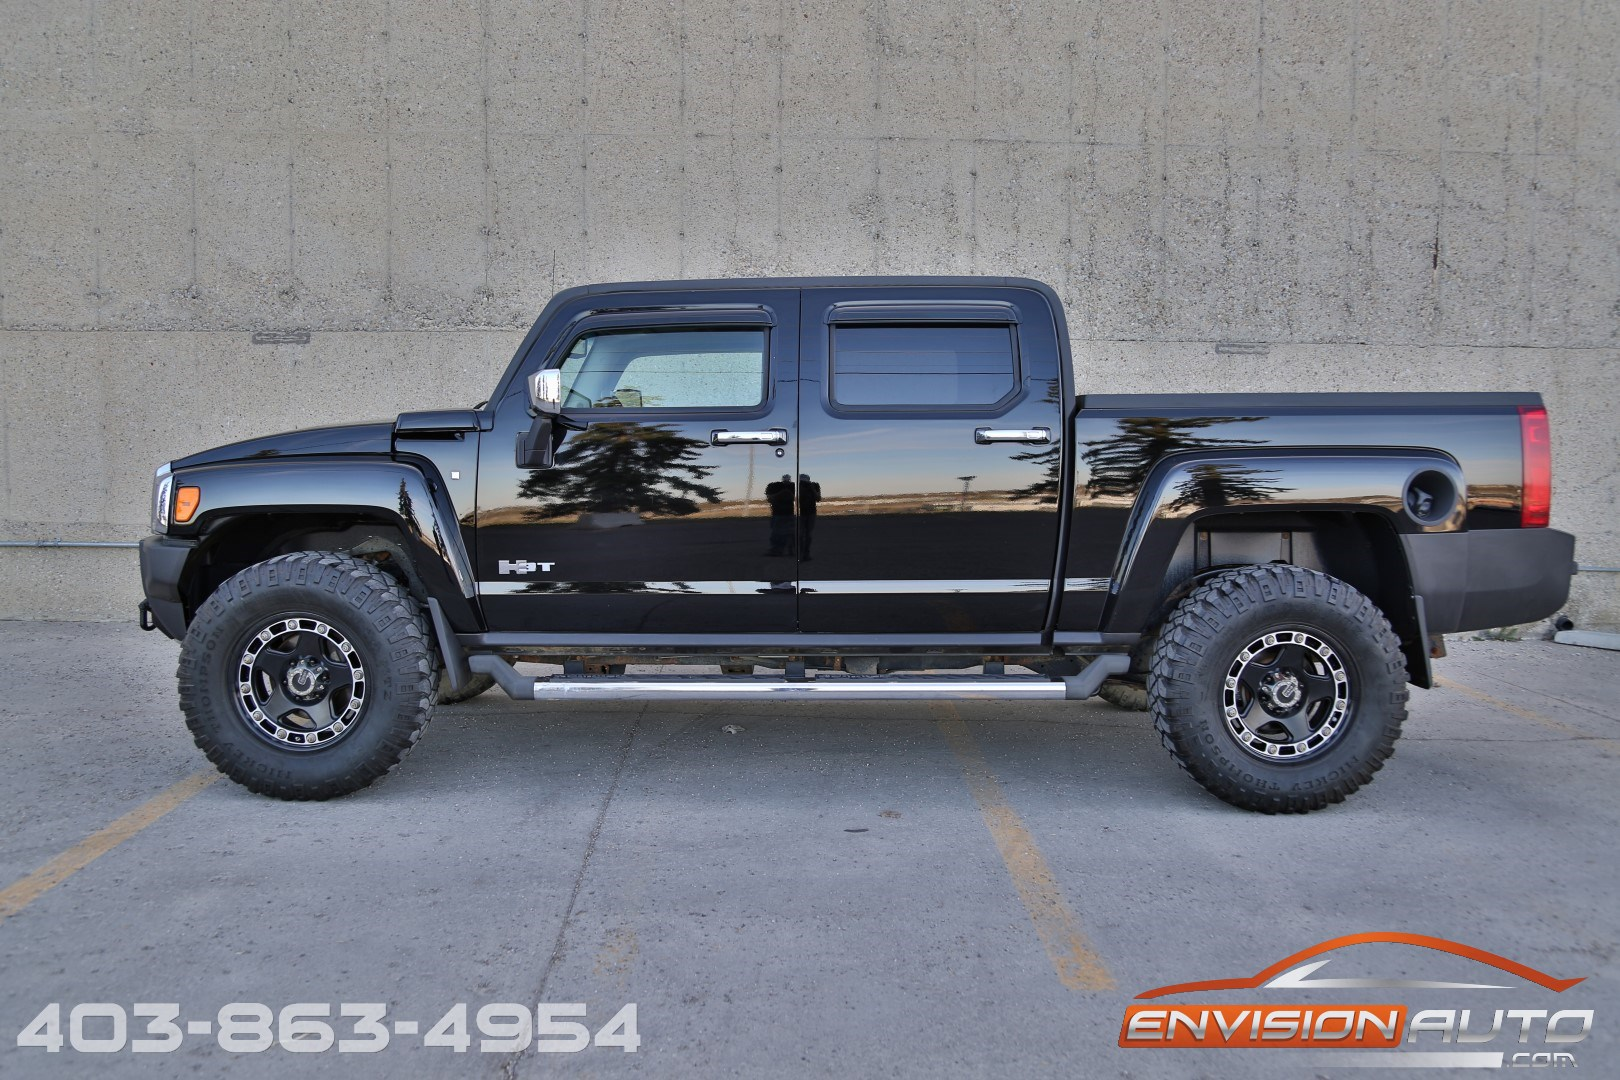 Silverado 2500hd 3500hd moreover This Isnt Just A Jeep Wrangler Pickup Its An Off Road 1692400054 further americanoutlawwheel further Softopper also Watch. on gmc sierra 6 5 in lift